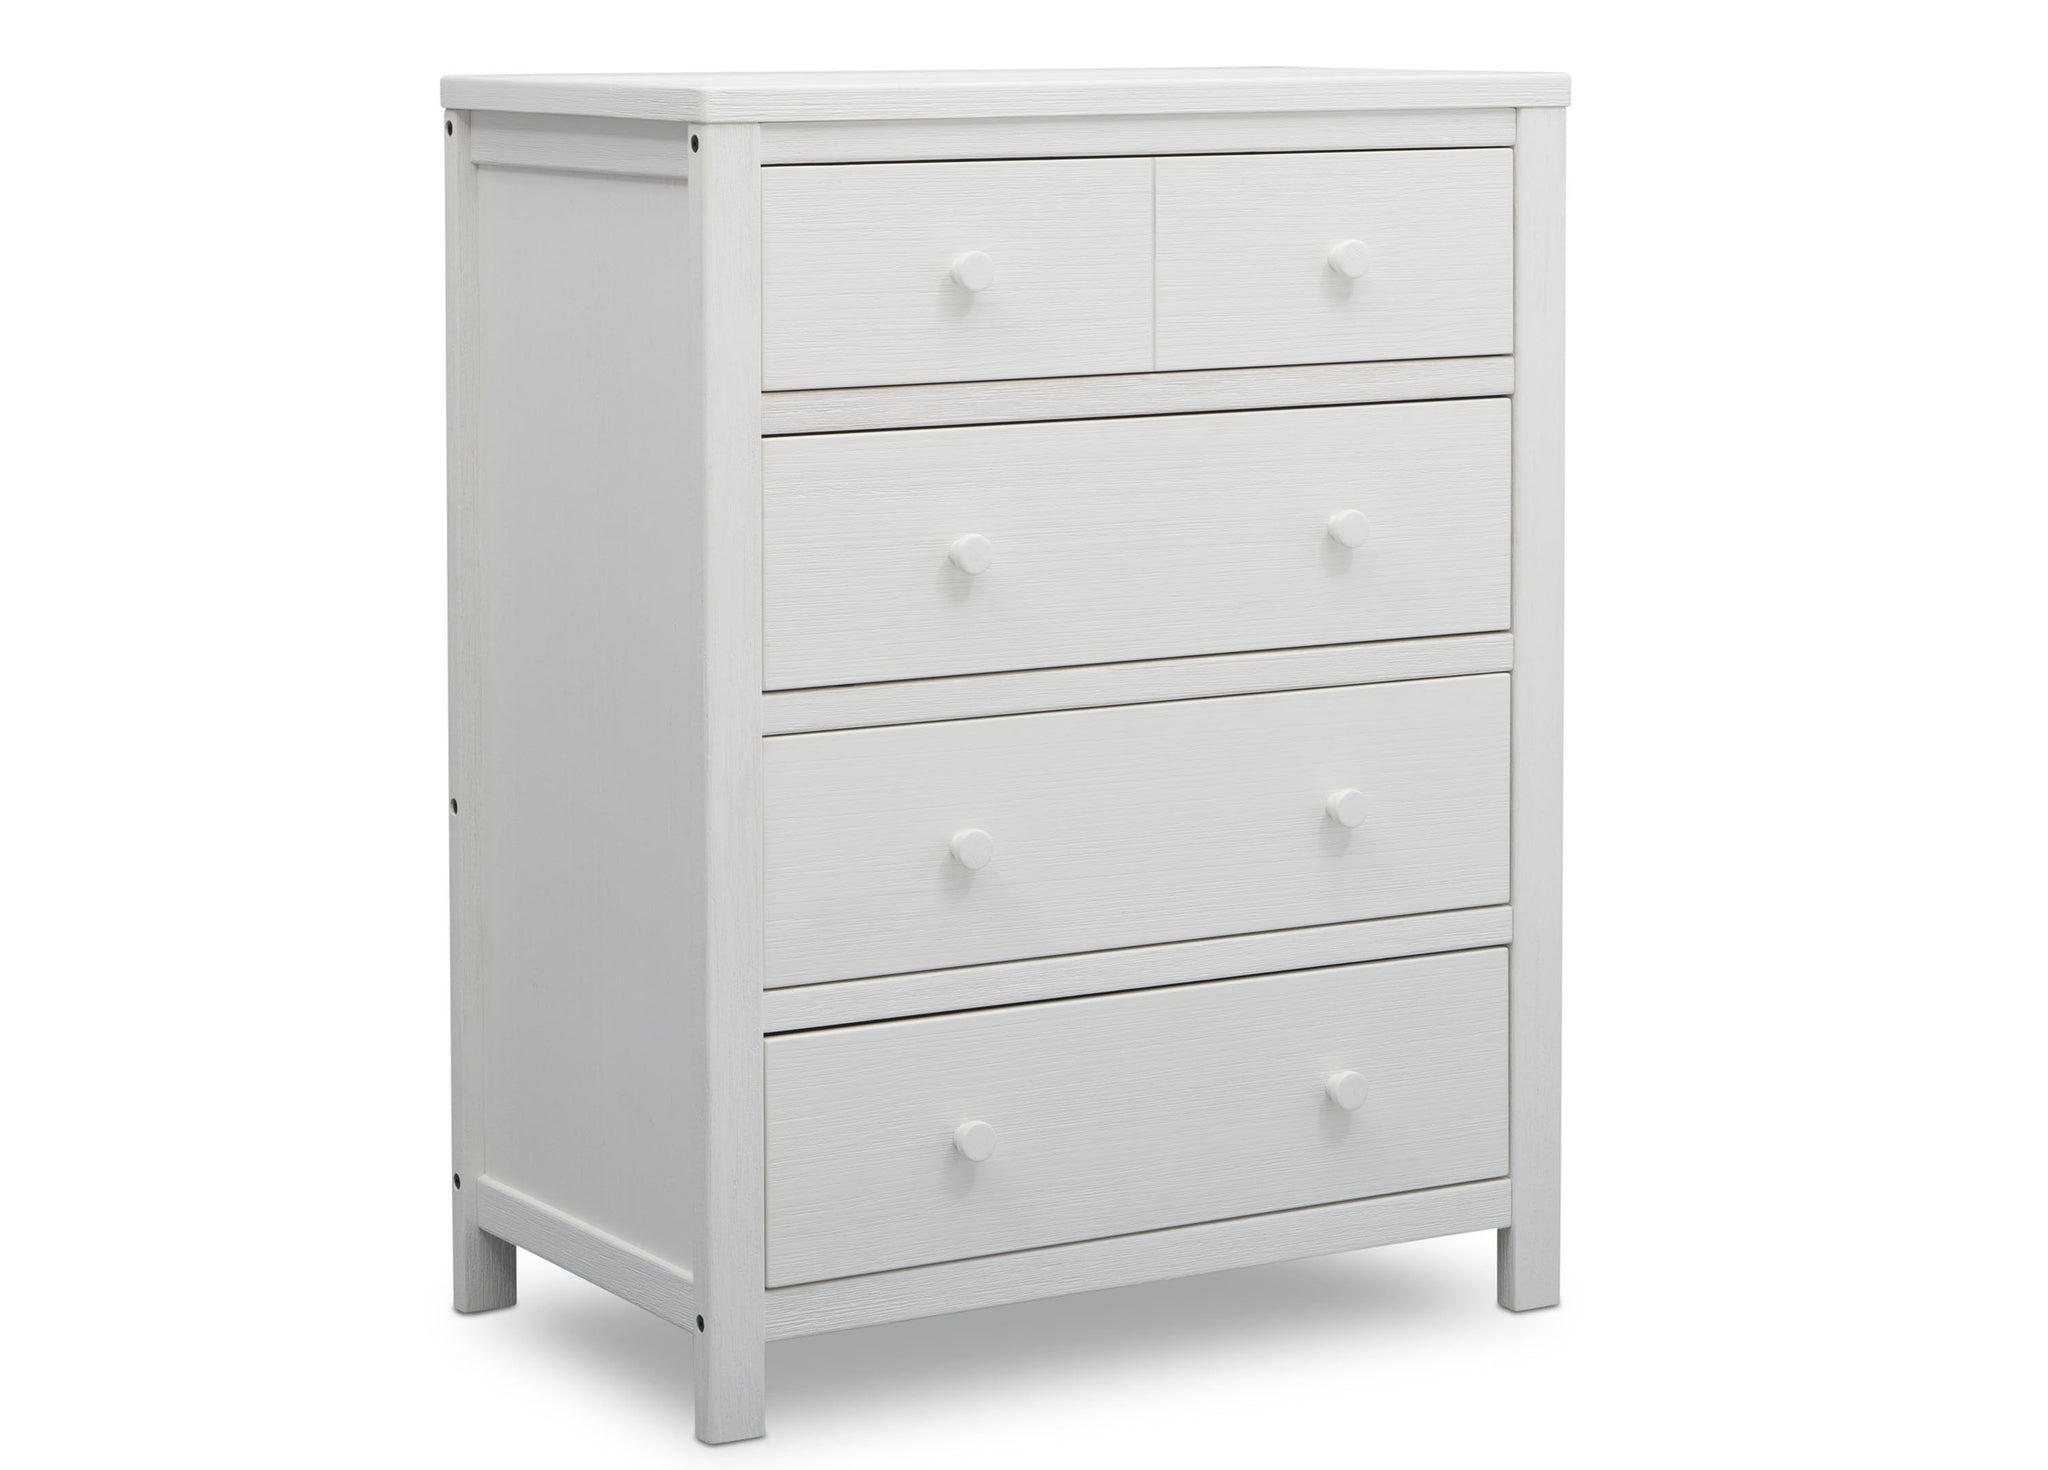 Delta Children Rustic Bianca (170) Cambridge 4 Drawer Dresser (535040), Side View, a2a